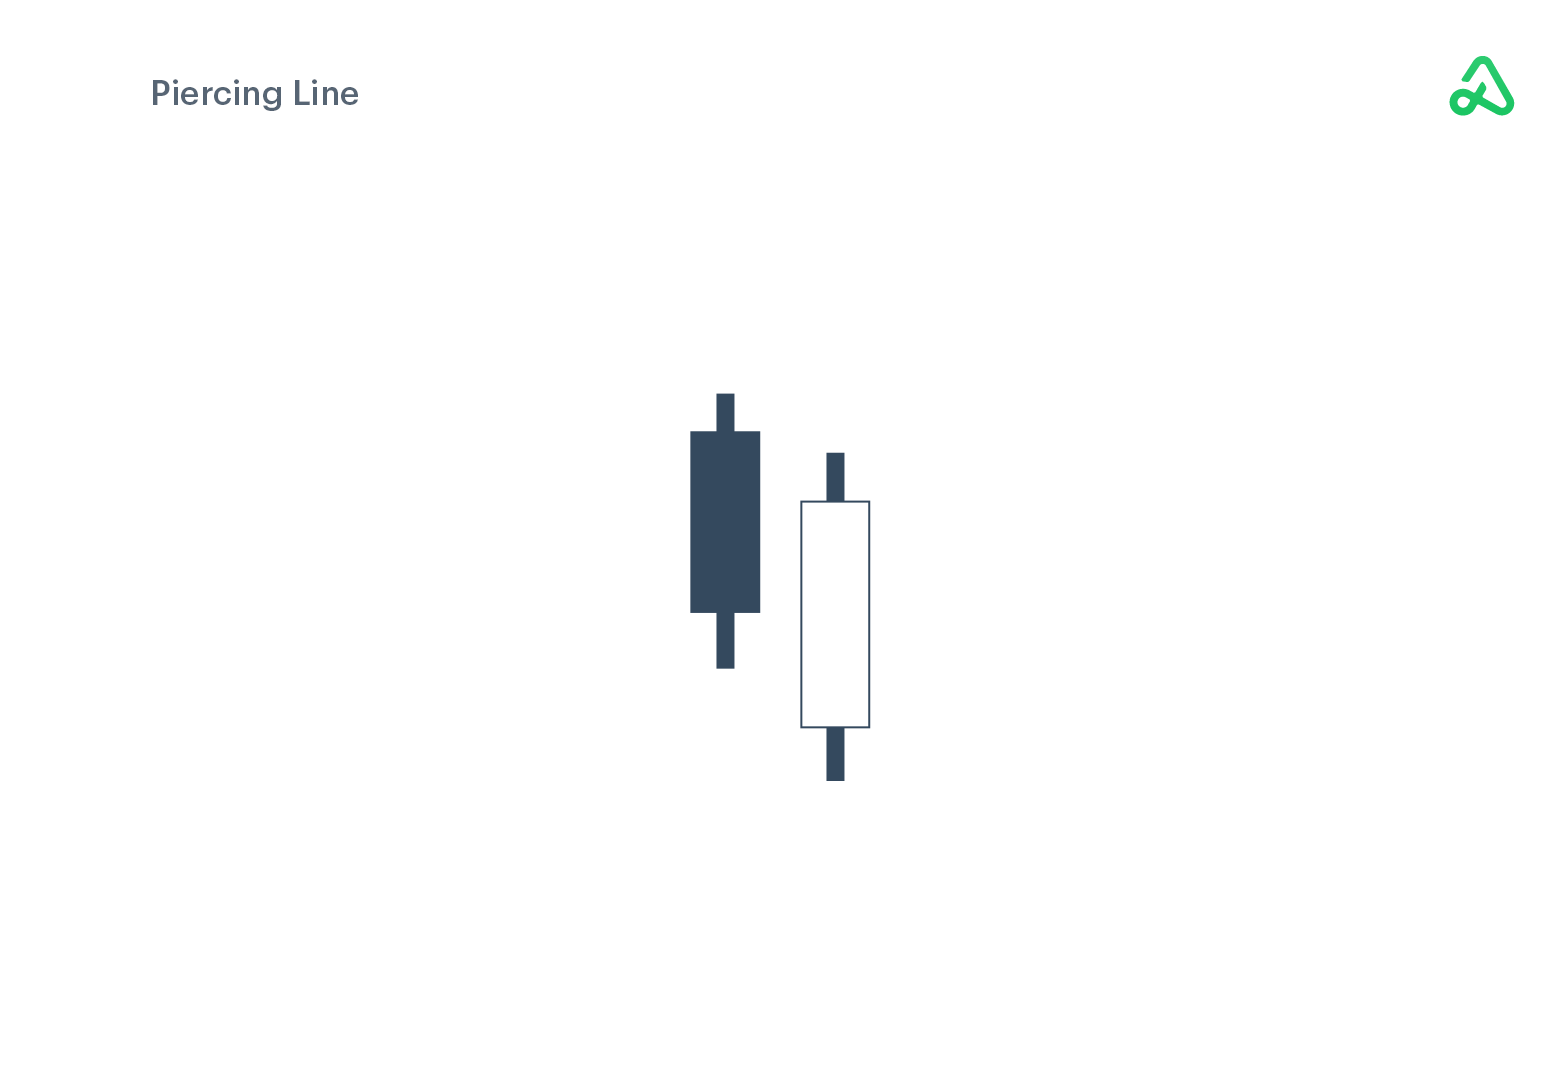 Piercing Line example image